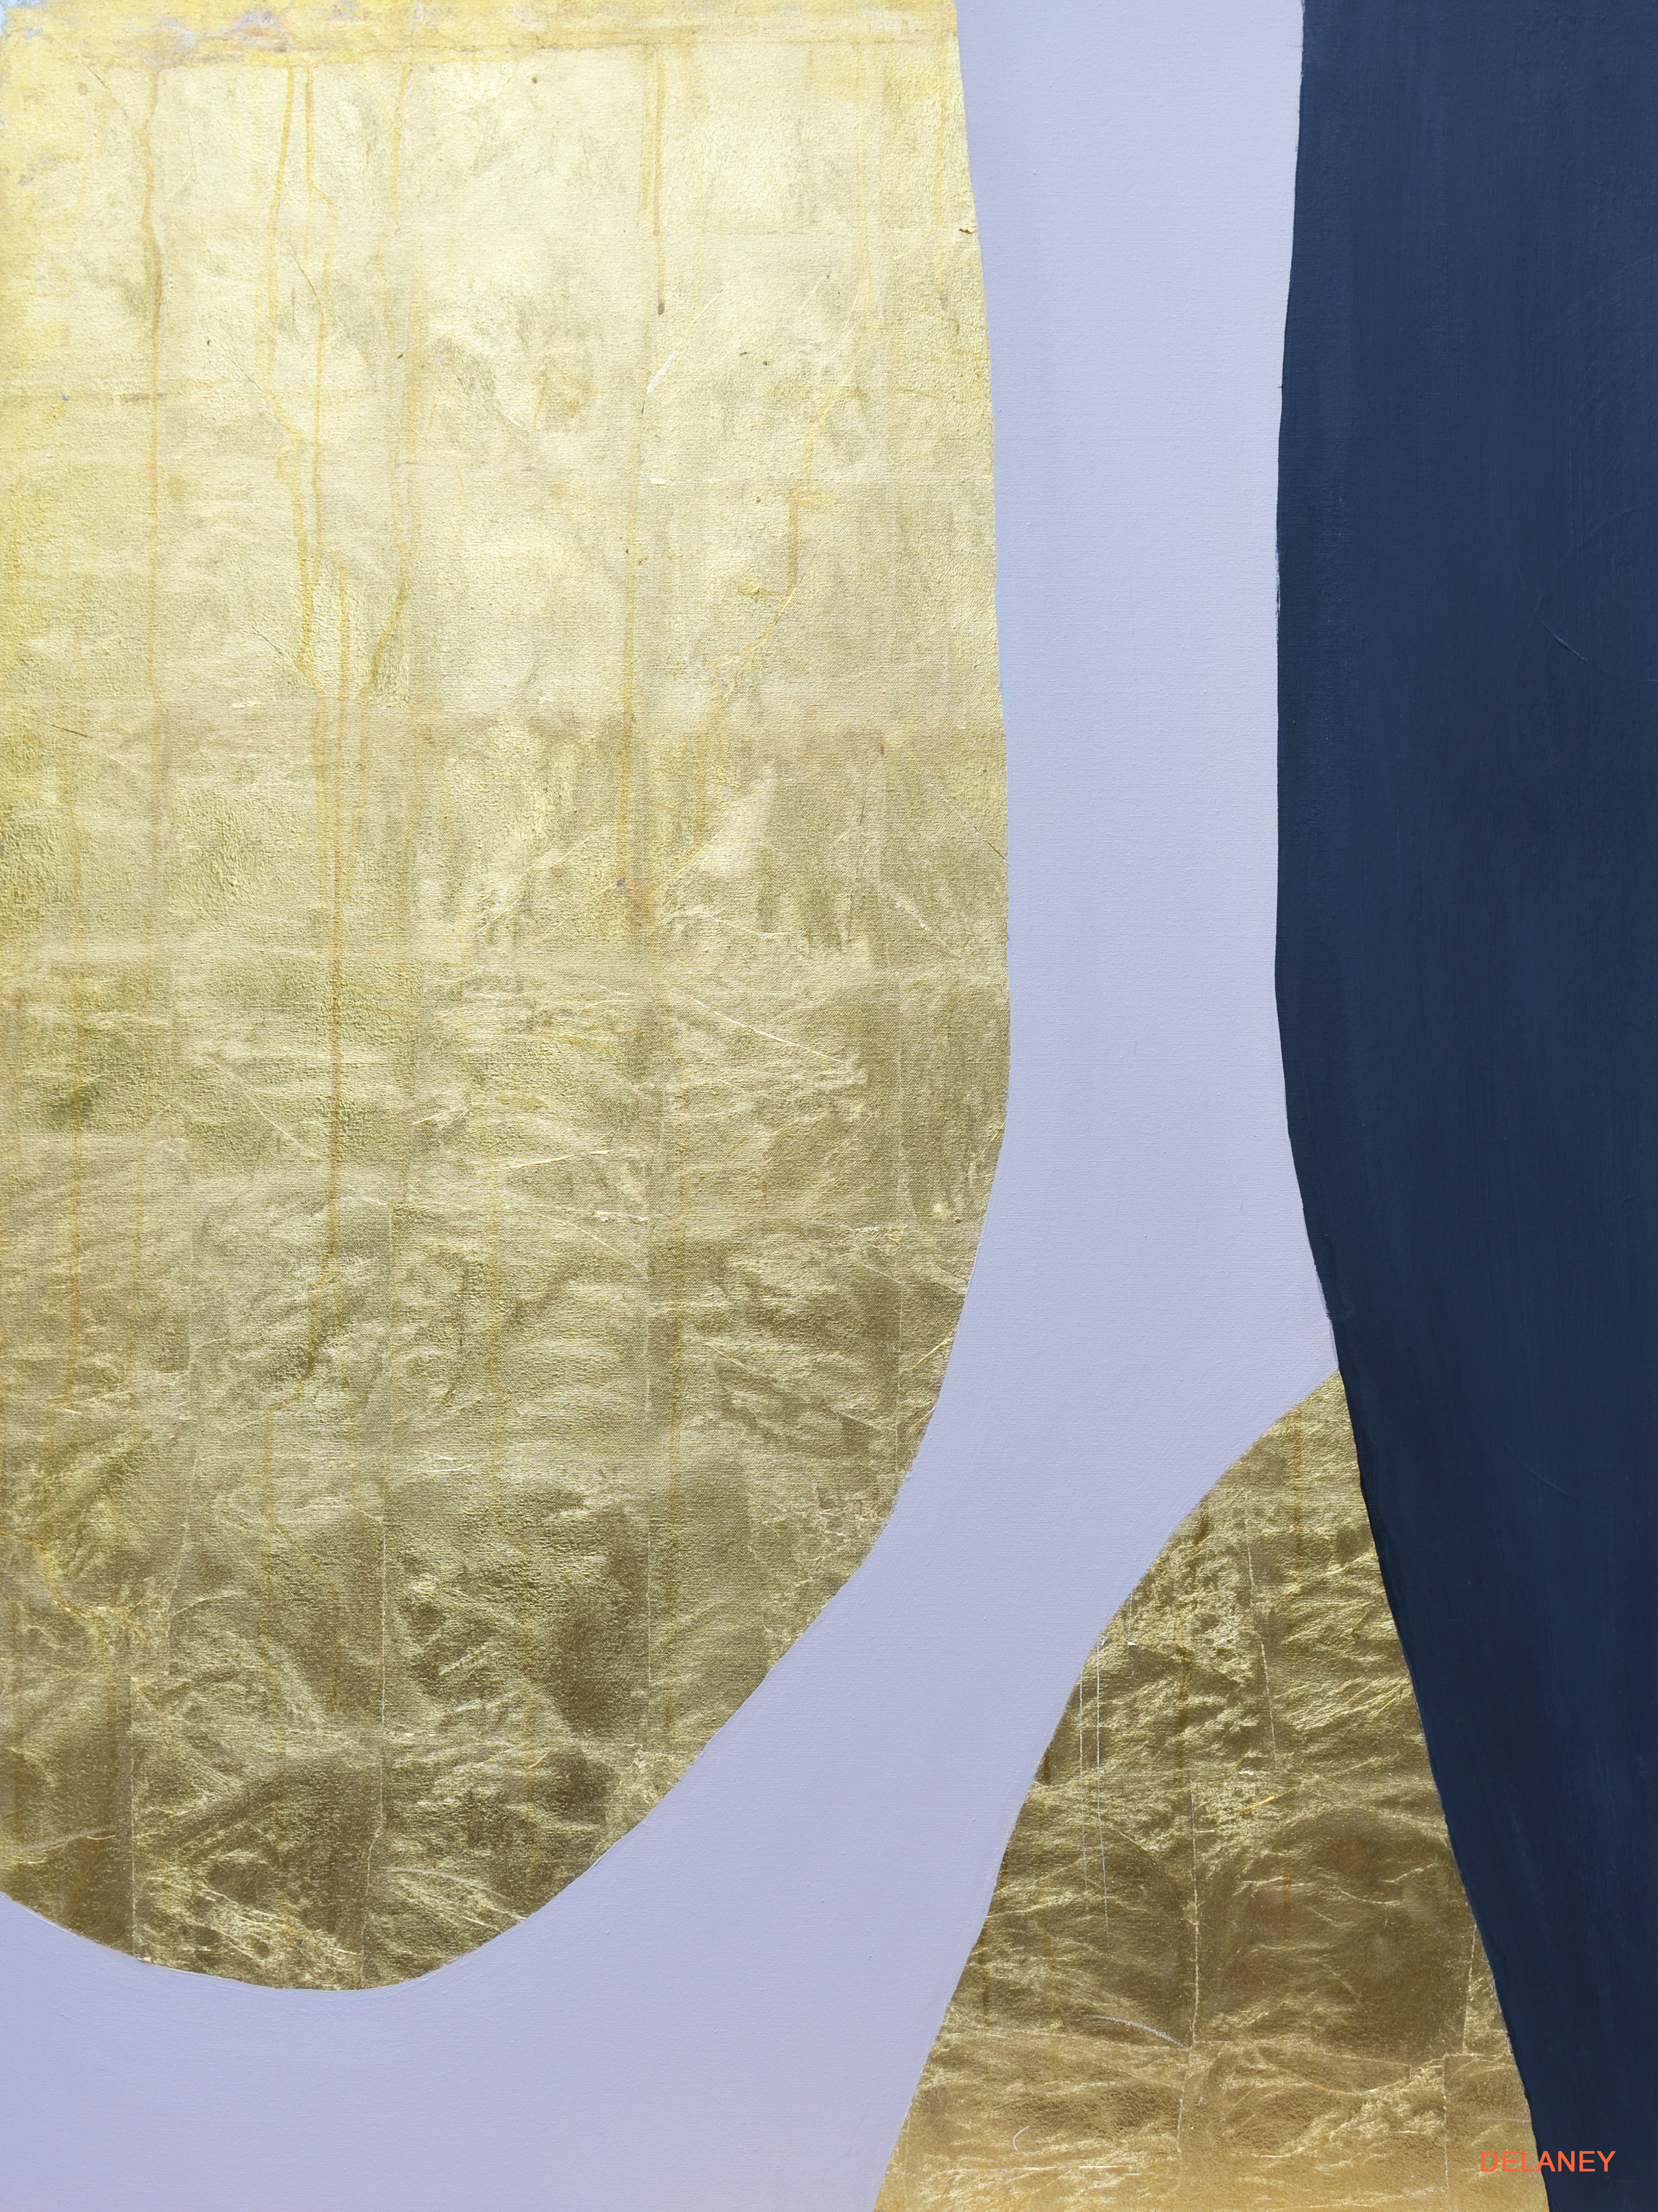 Grey Triptych #2  Gold leaf and acrylic on canvas (122x91cm)